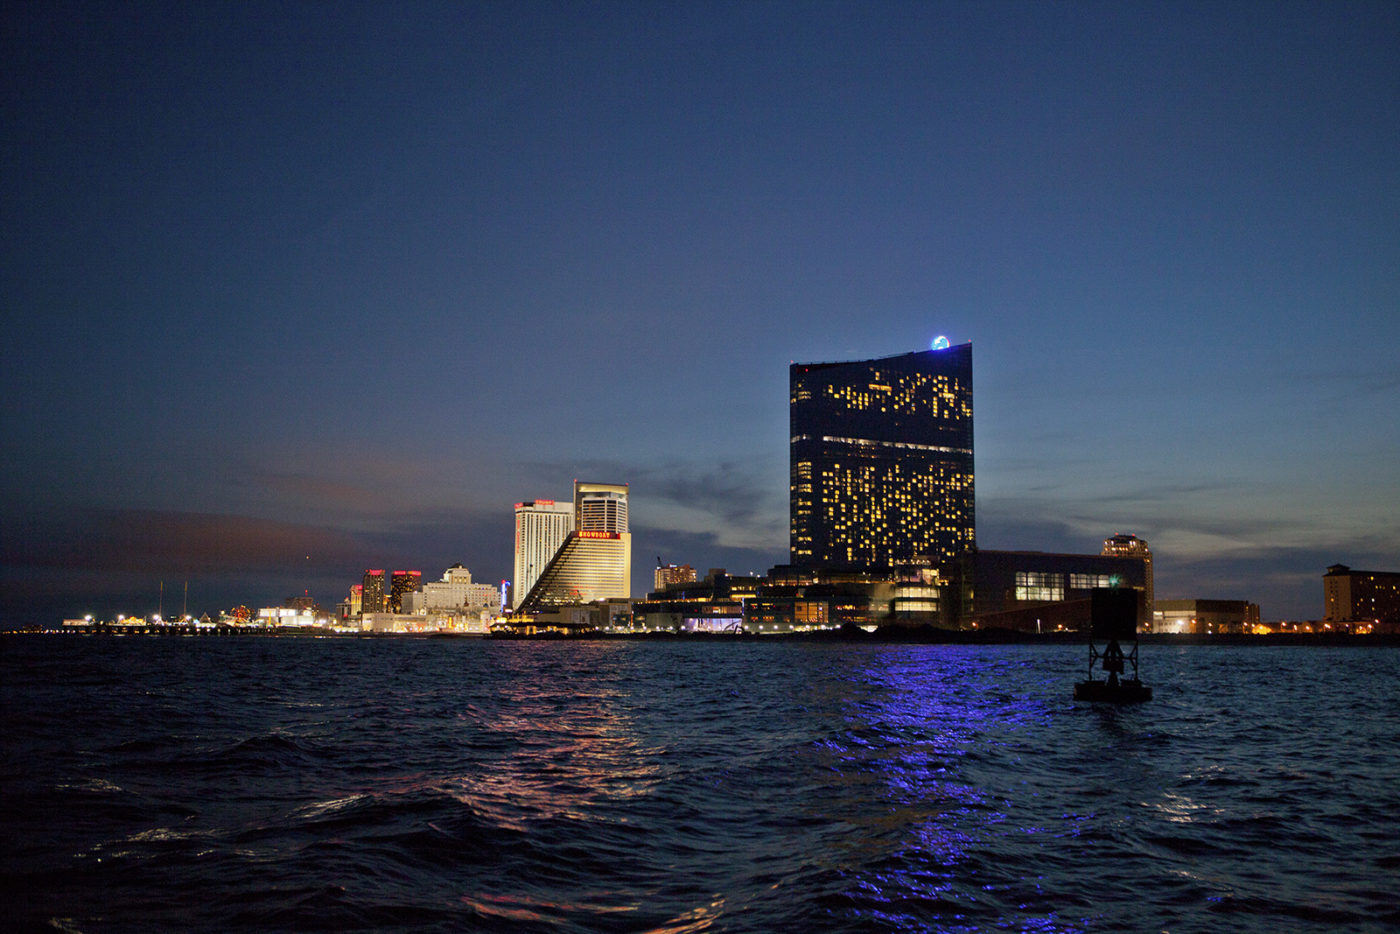 Atlantic City's multi billion dollar White Elephant REVEL Casino now rots empty.